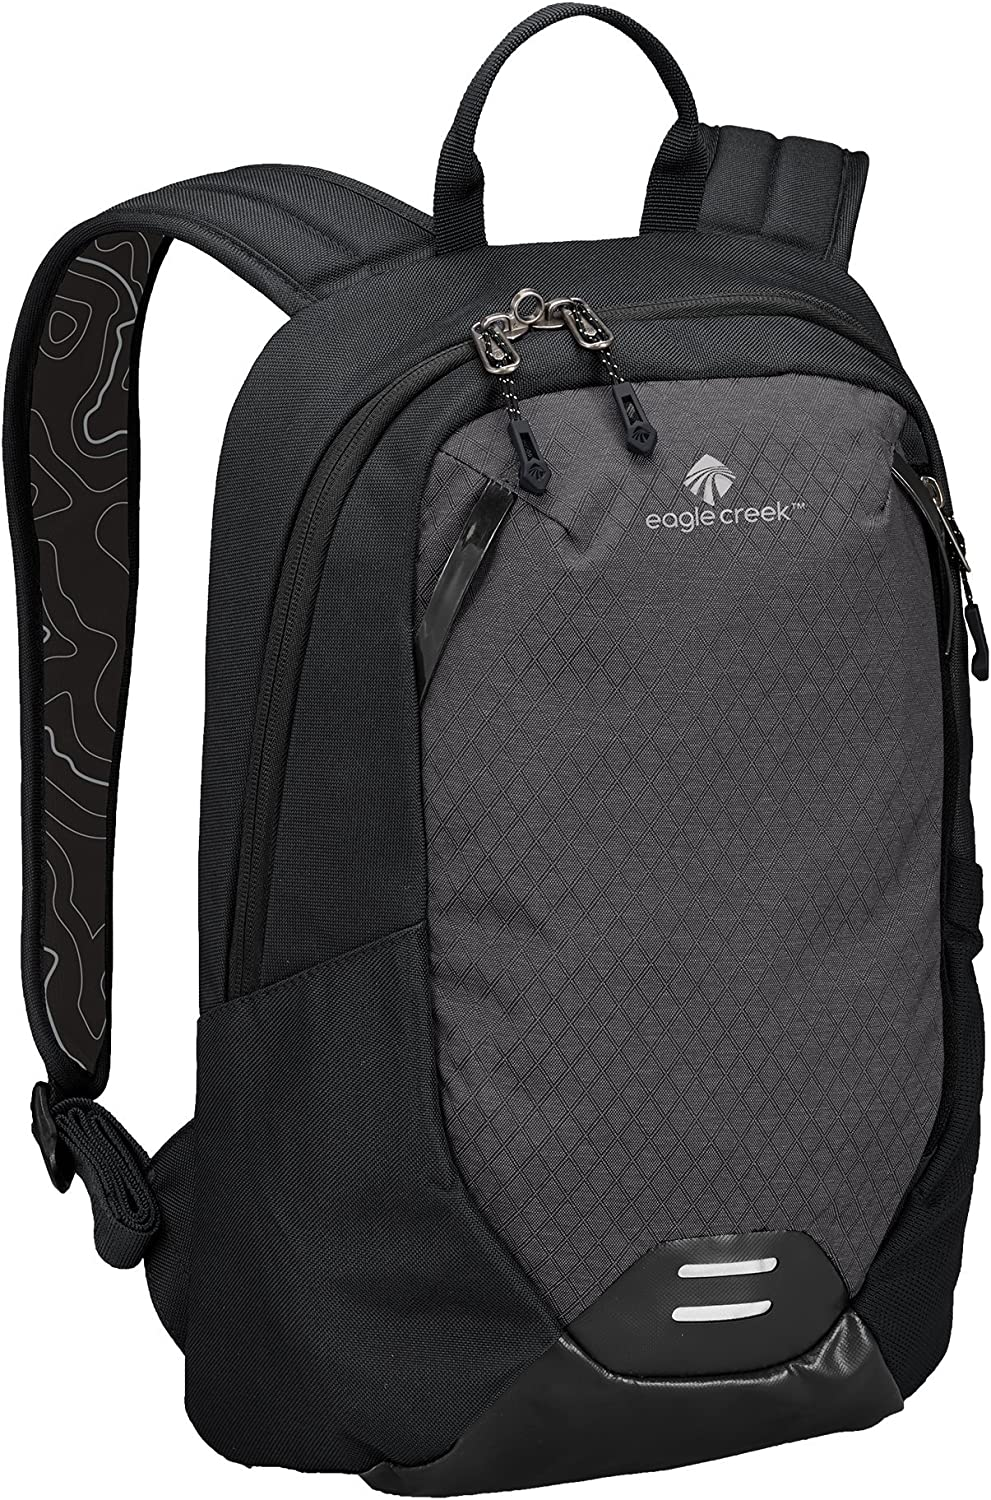 Eagle Creek Unisex Travel Laptop Backpack-multiuse-Hidden Tech Pocket, Black/Charcoal, One Size